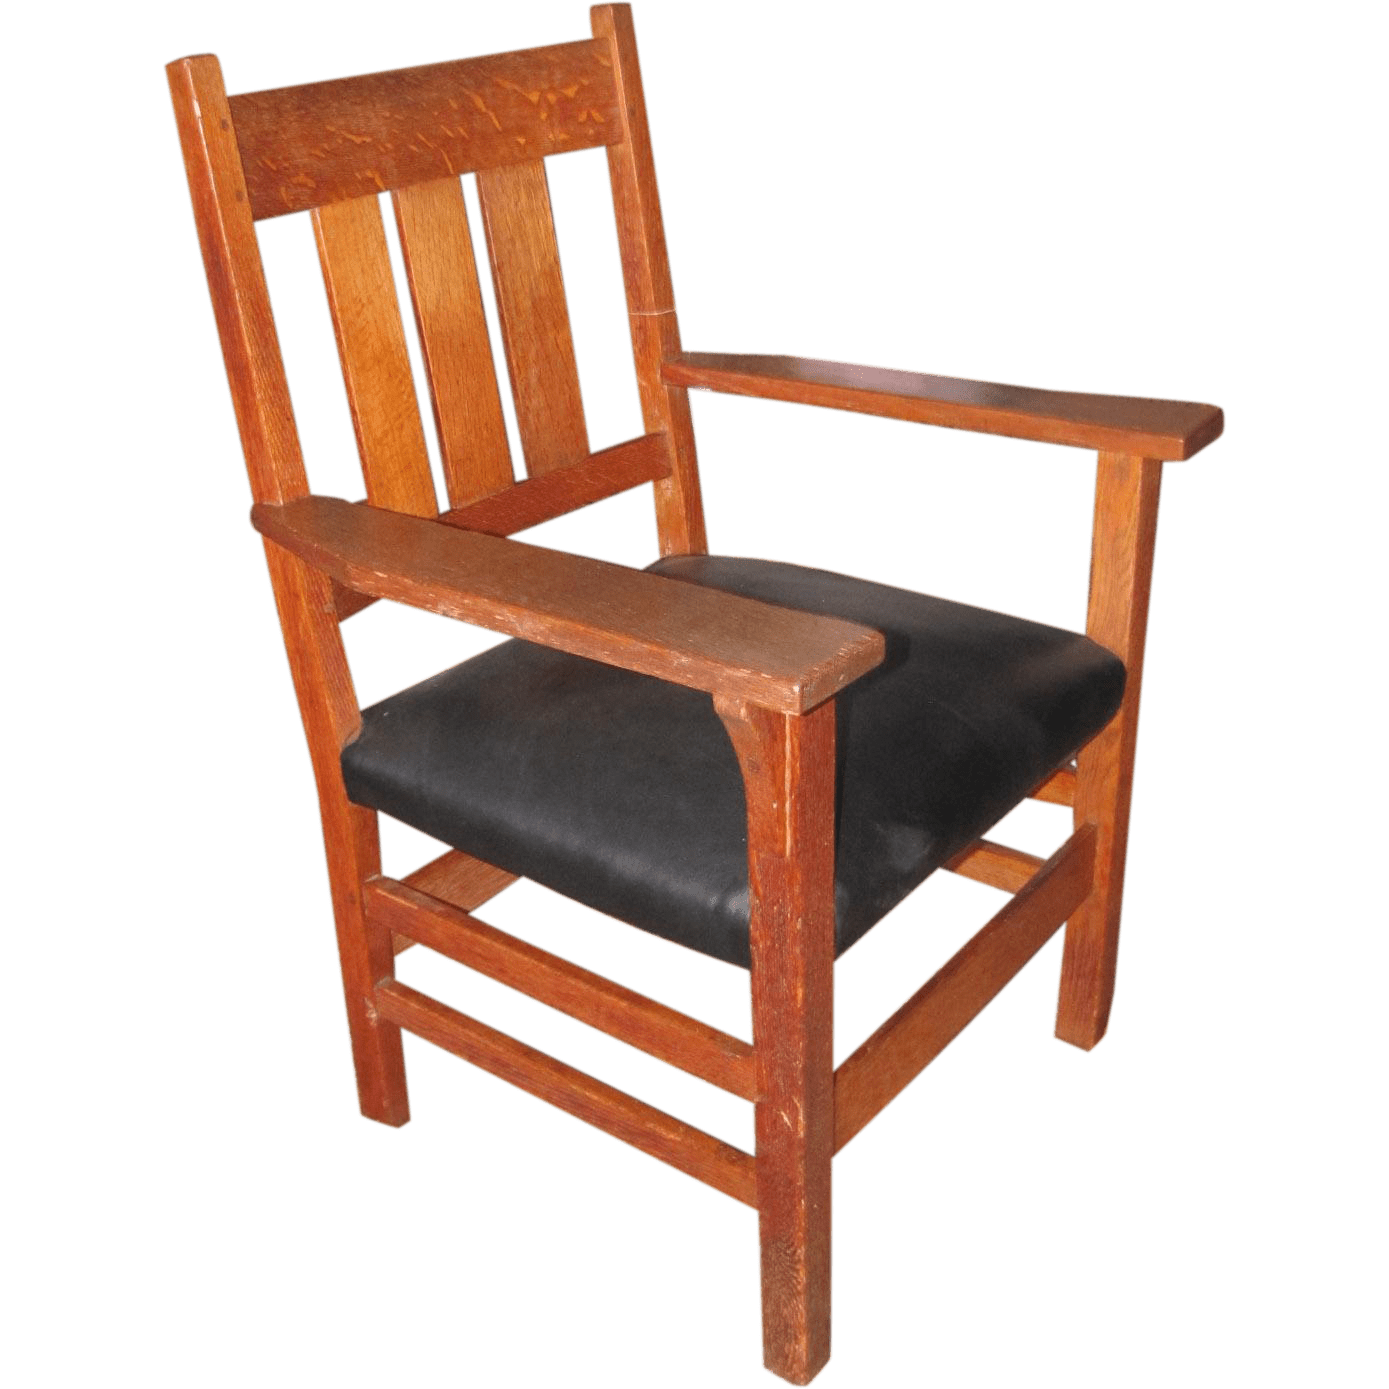 Stickley Chair Antique Quotgustav Stickley Quot Arm Chair W3176 From Antique